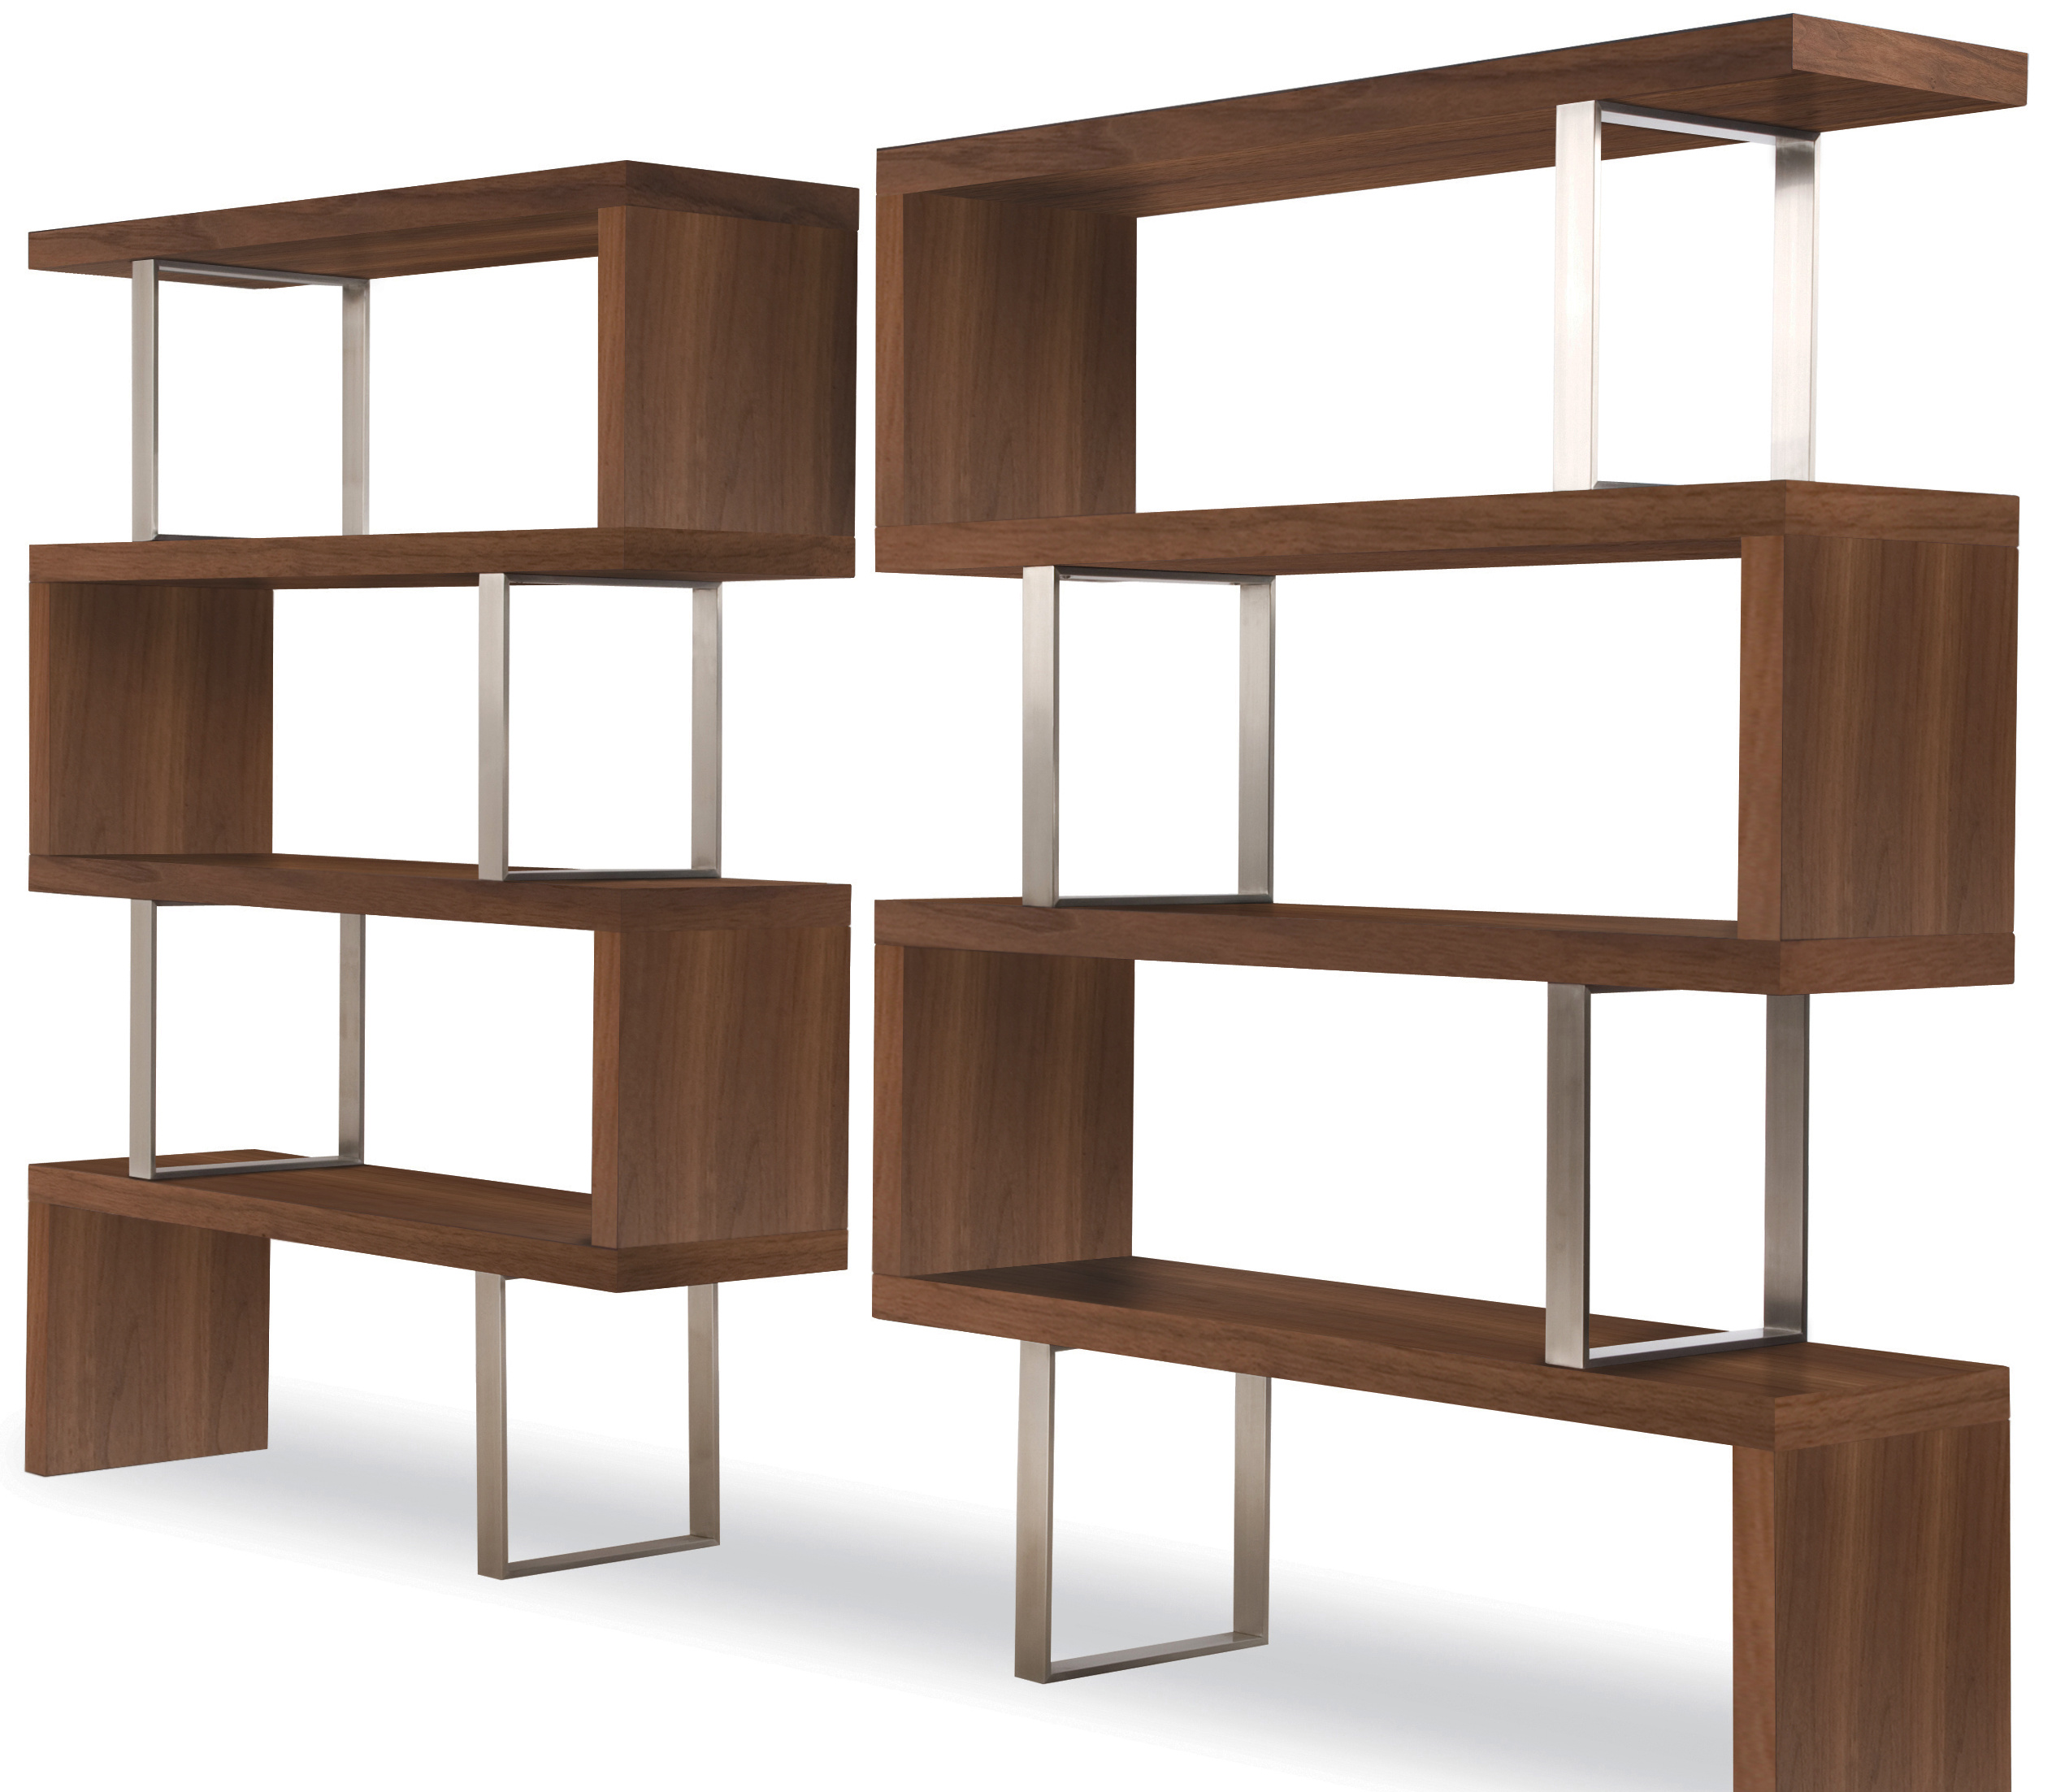 america silvens contemporary furniture free home bookcases garden bookcase of product overstock display cabinet walnut today shipping shelf open